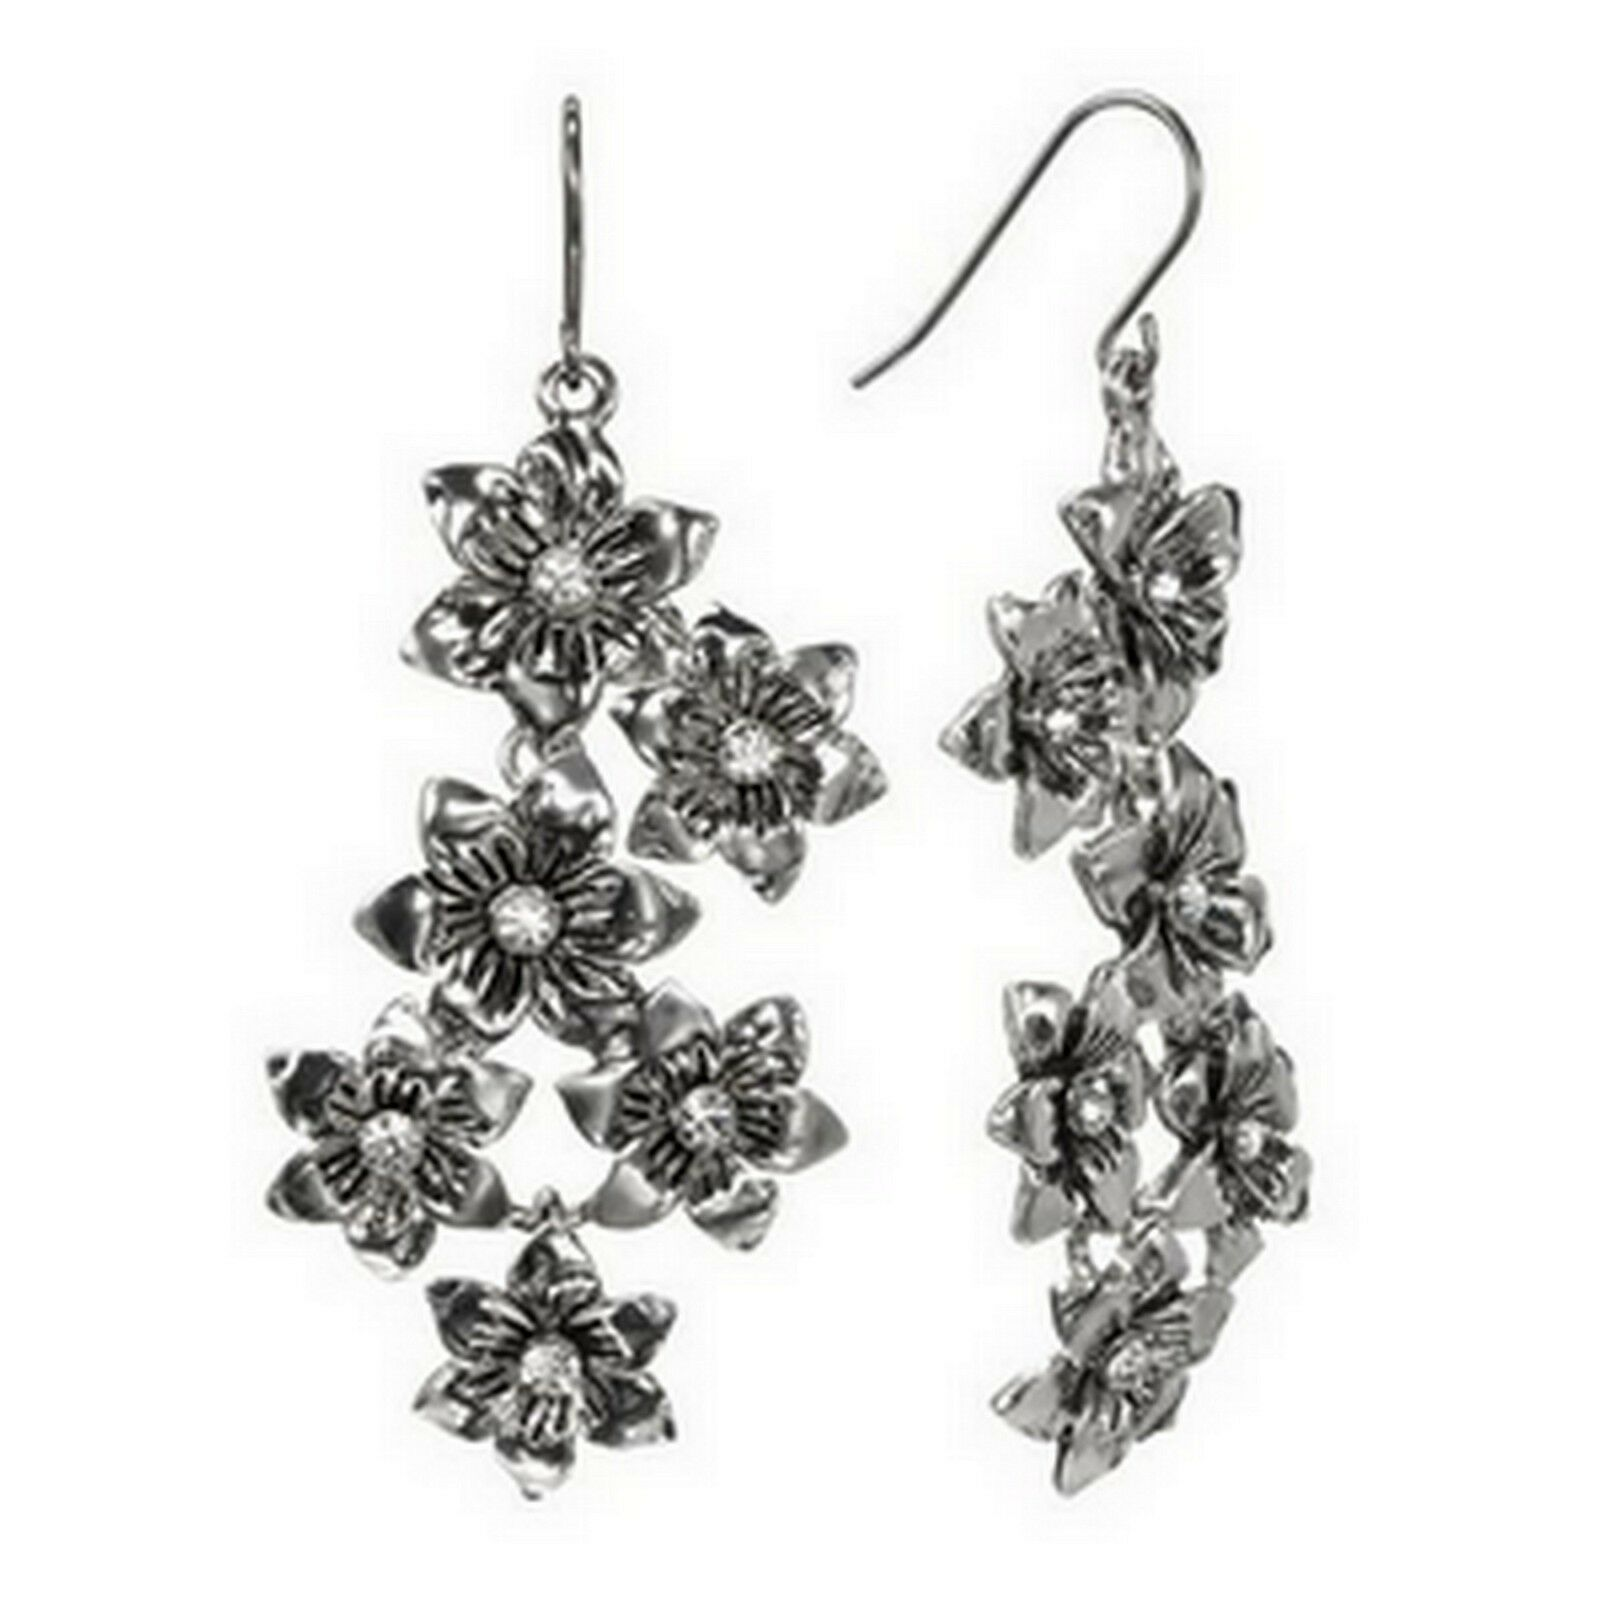 Trifari Silver Tone Simulated Crystal Flower Floral Drop Stud Earrings - $15.99